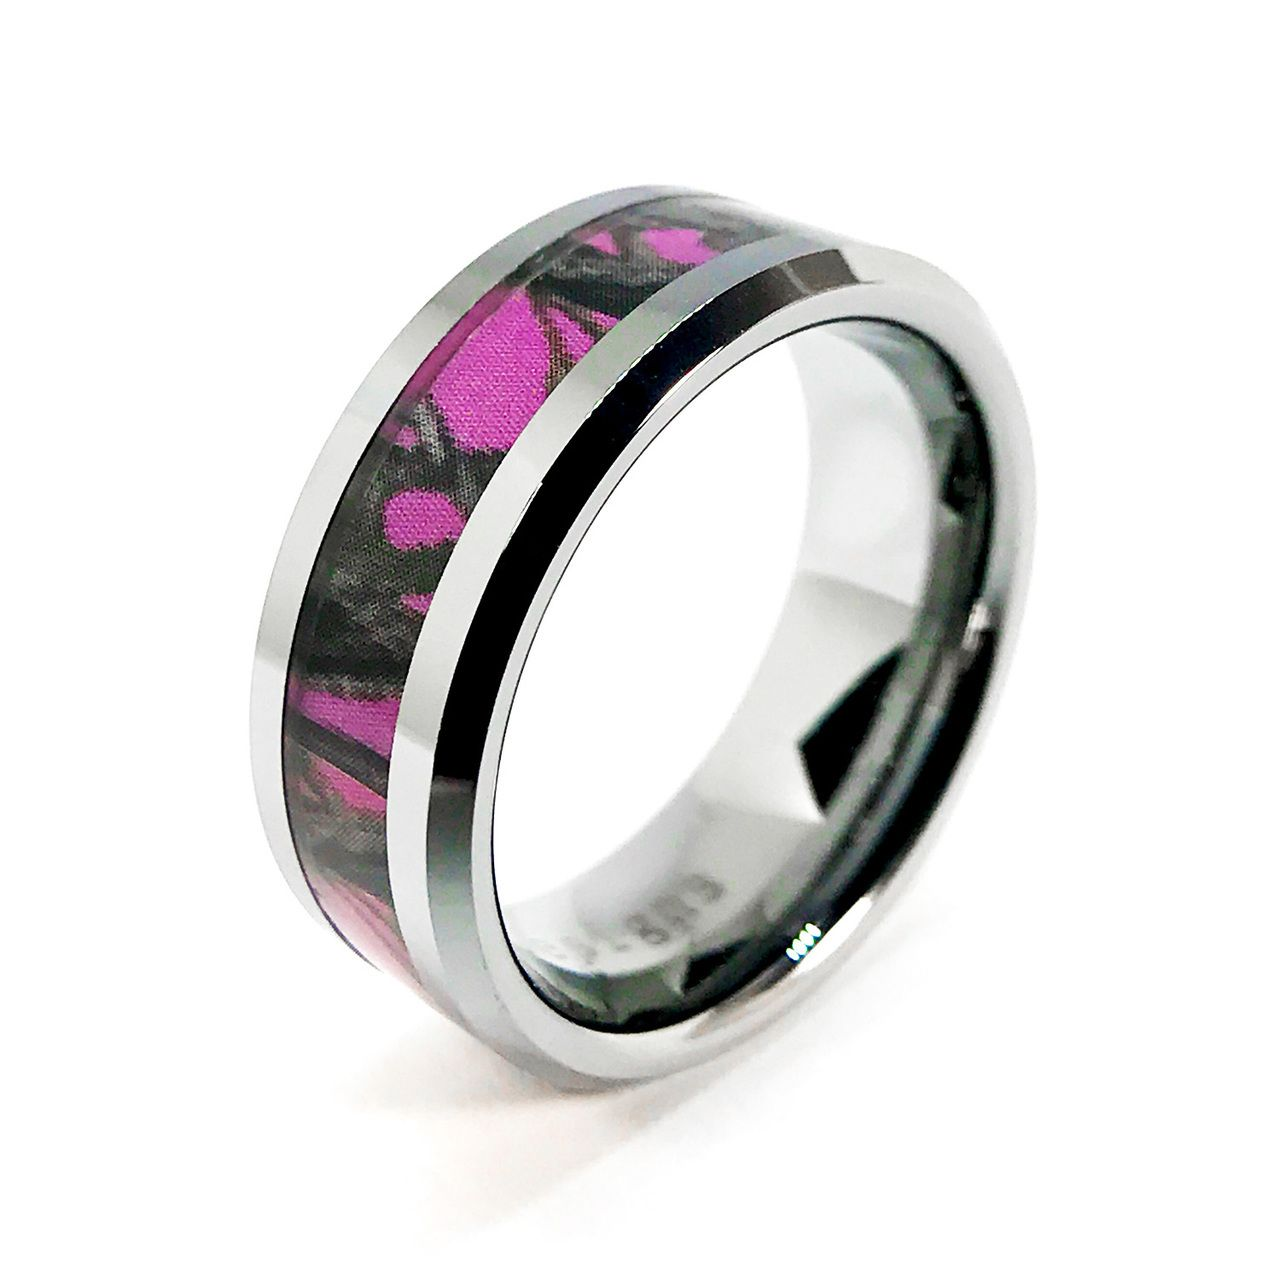 Huntress pink camouflage ring for women tugsten band